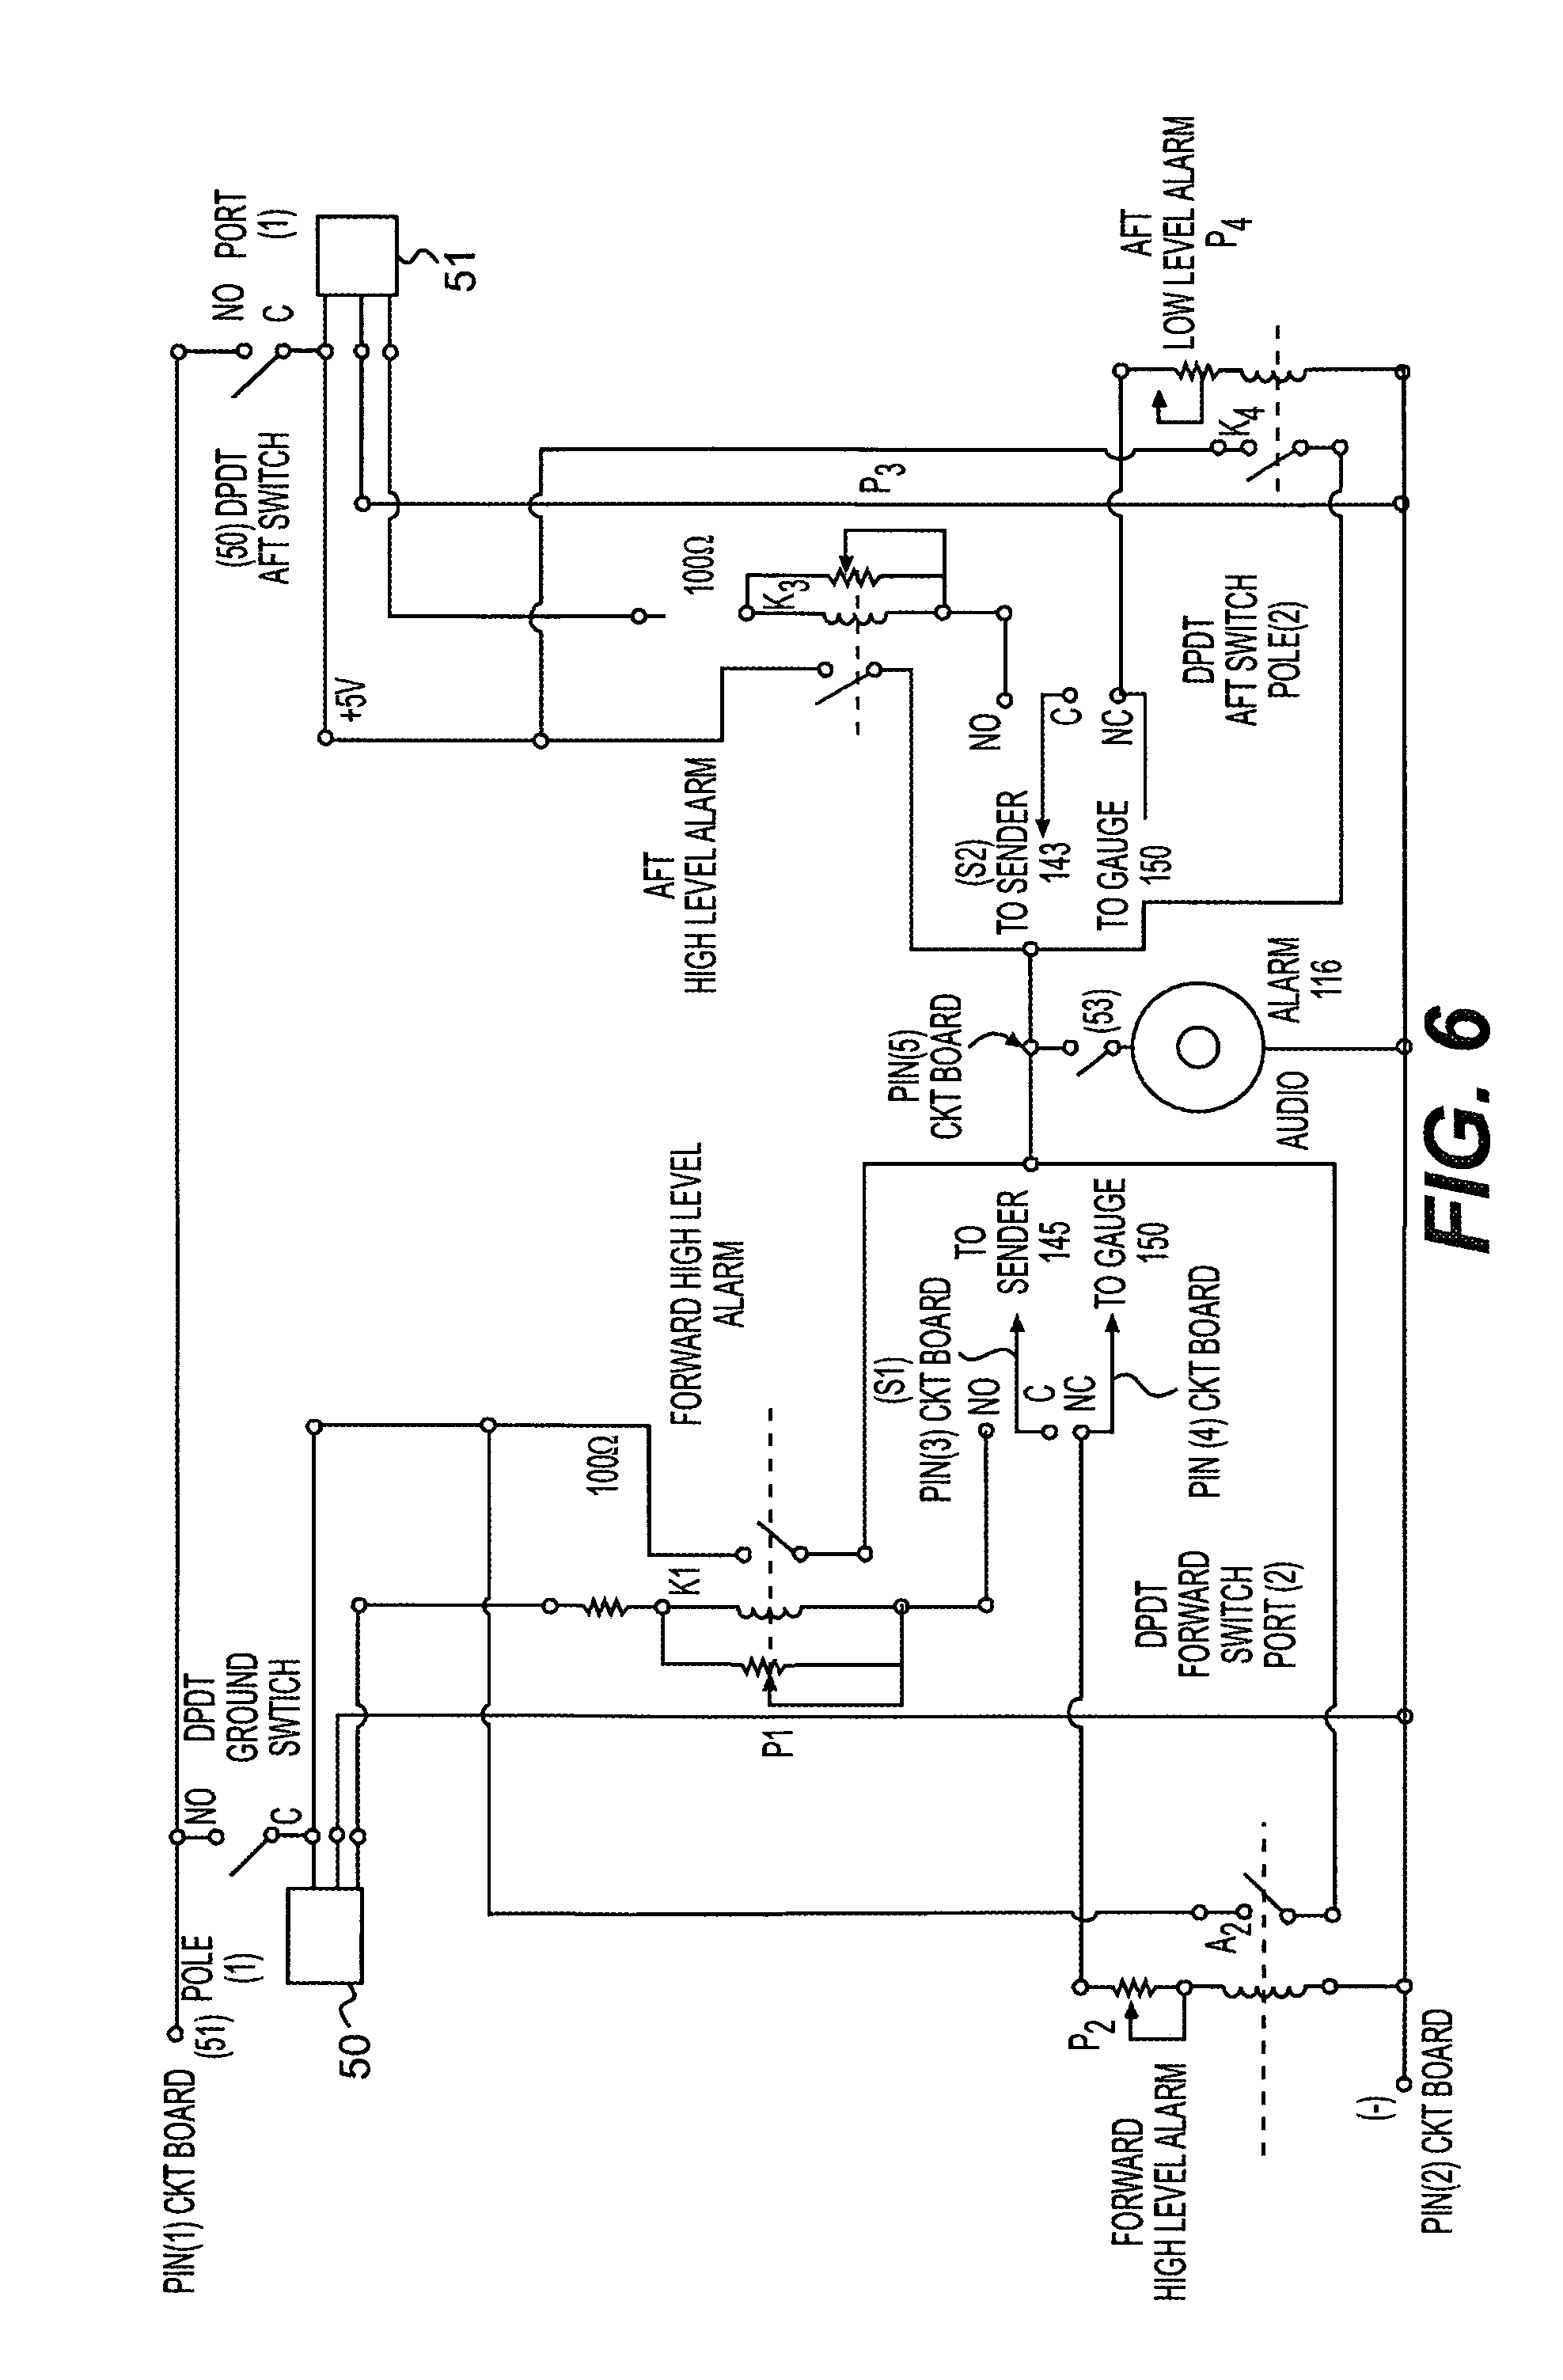 US06970079 20051129 D00006 patent us6970079 high low level alarm controller google patents lester controls wiring diagrams at webbmarketing.co